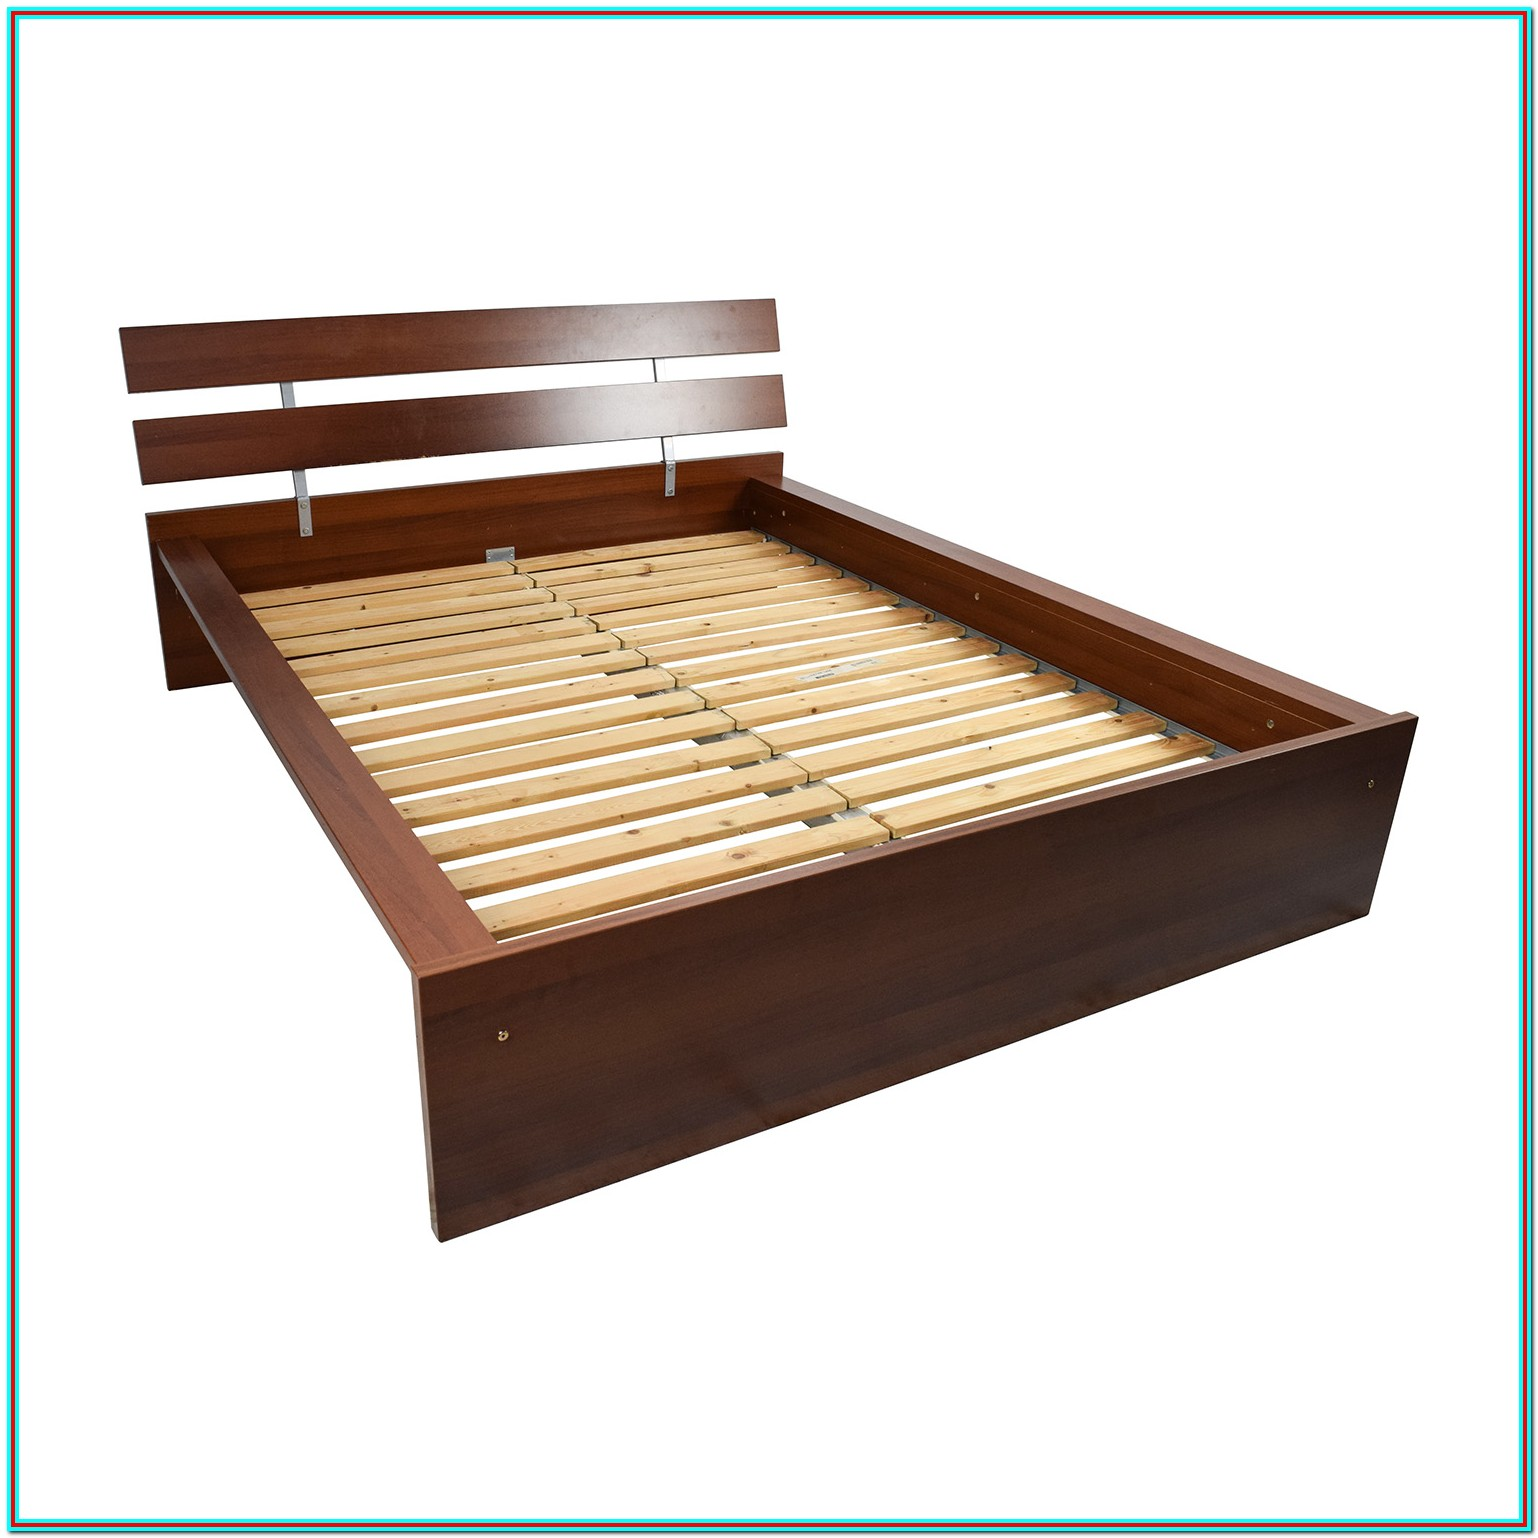 Ottoman Bed Frame King Size Ikea Bedroom Home